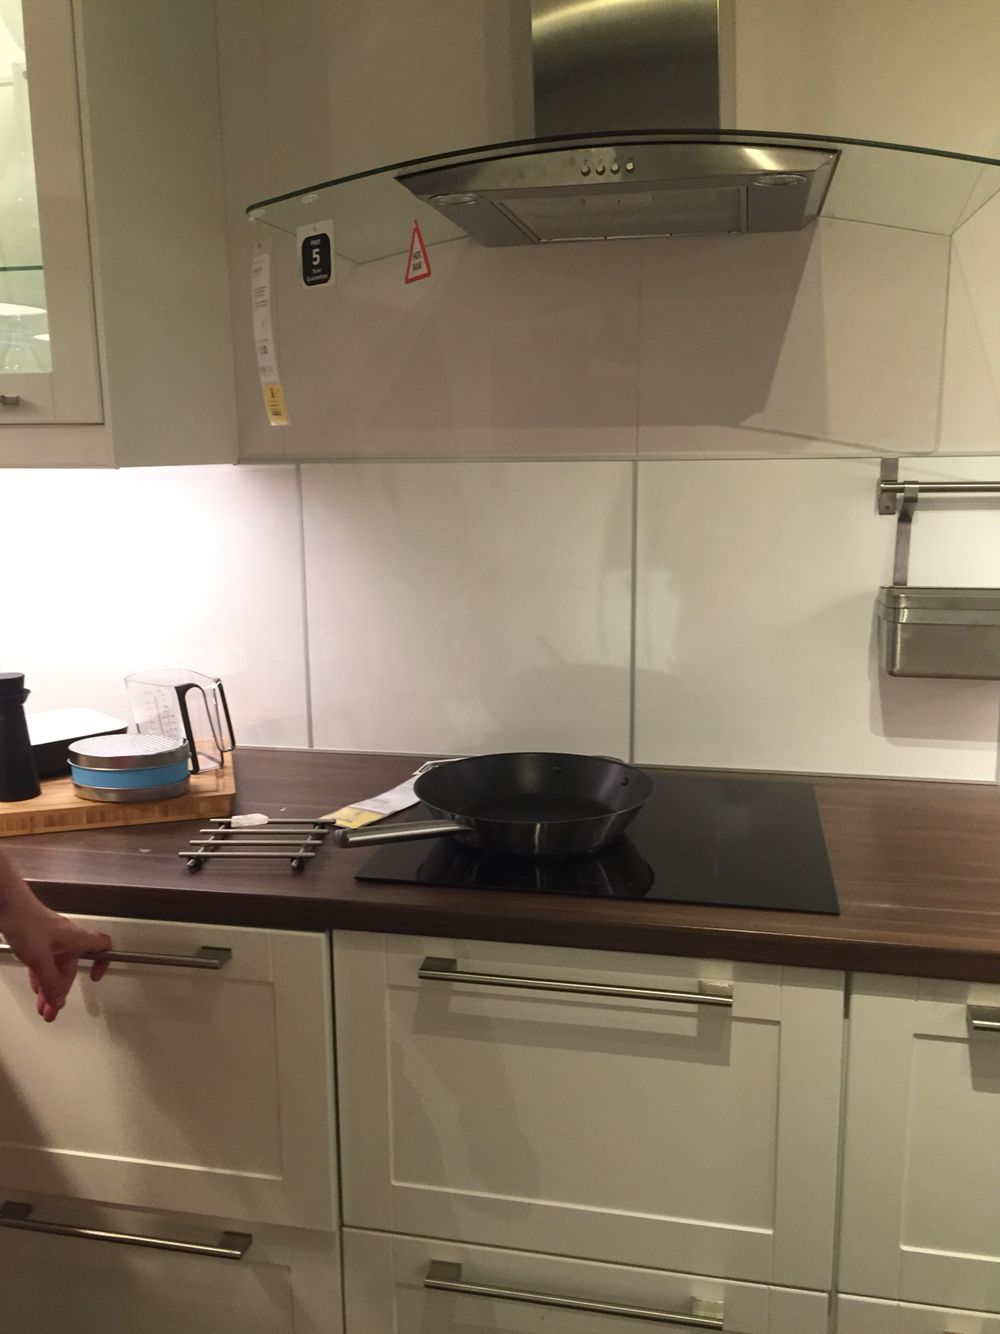 #Ikea #UK #KitchenDesign Cream Cabinets; Dark Wood Worktops; Built In